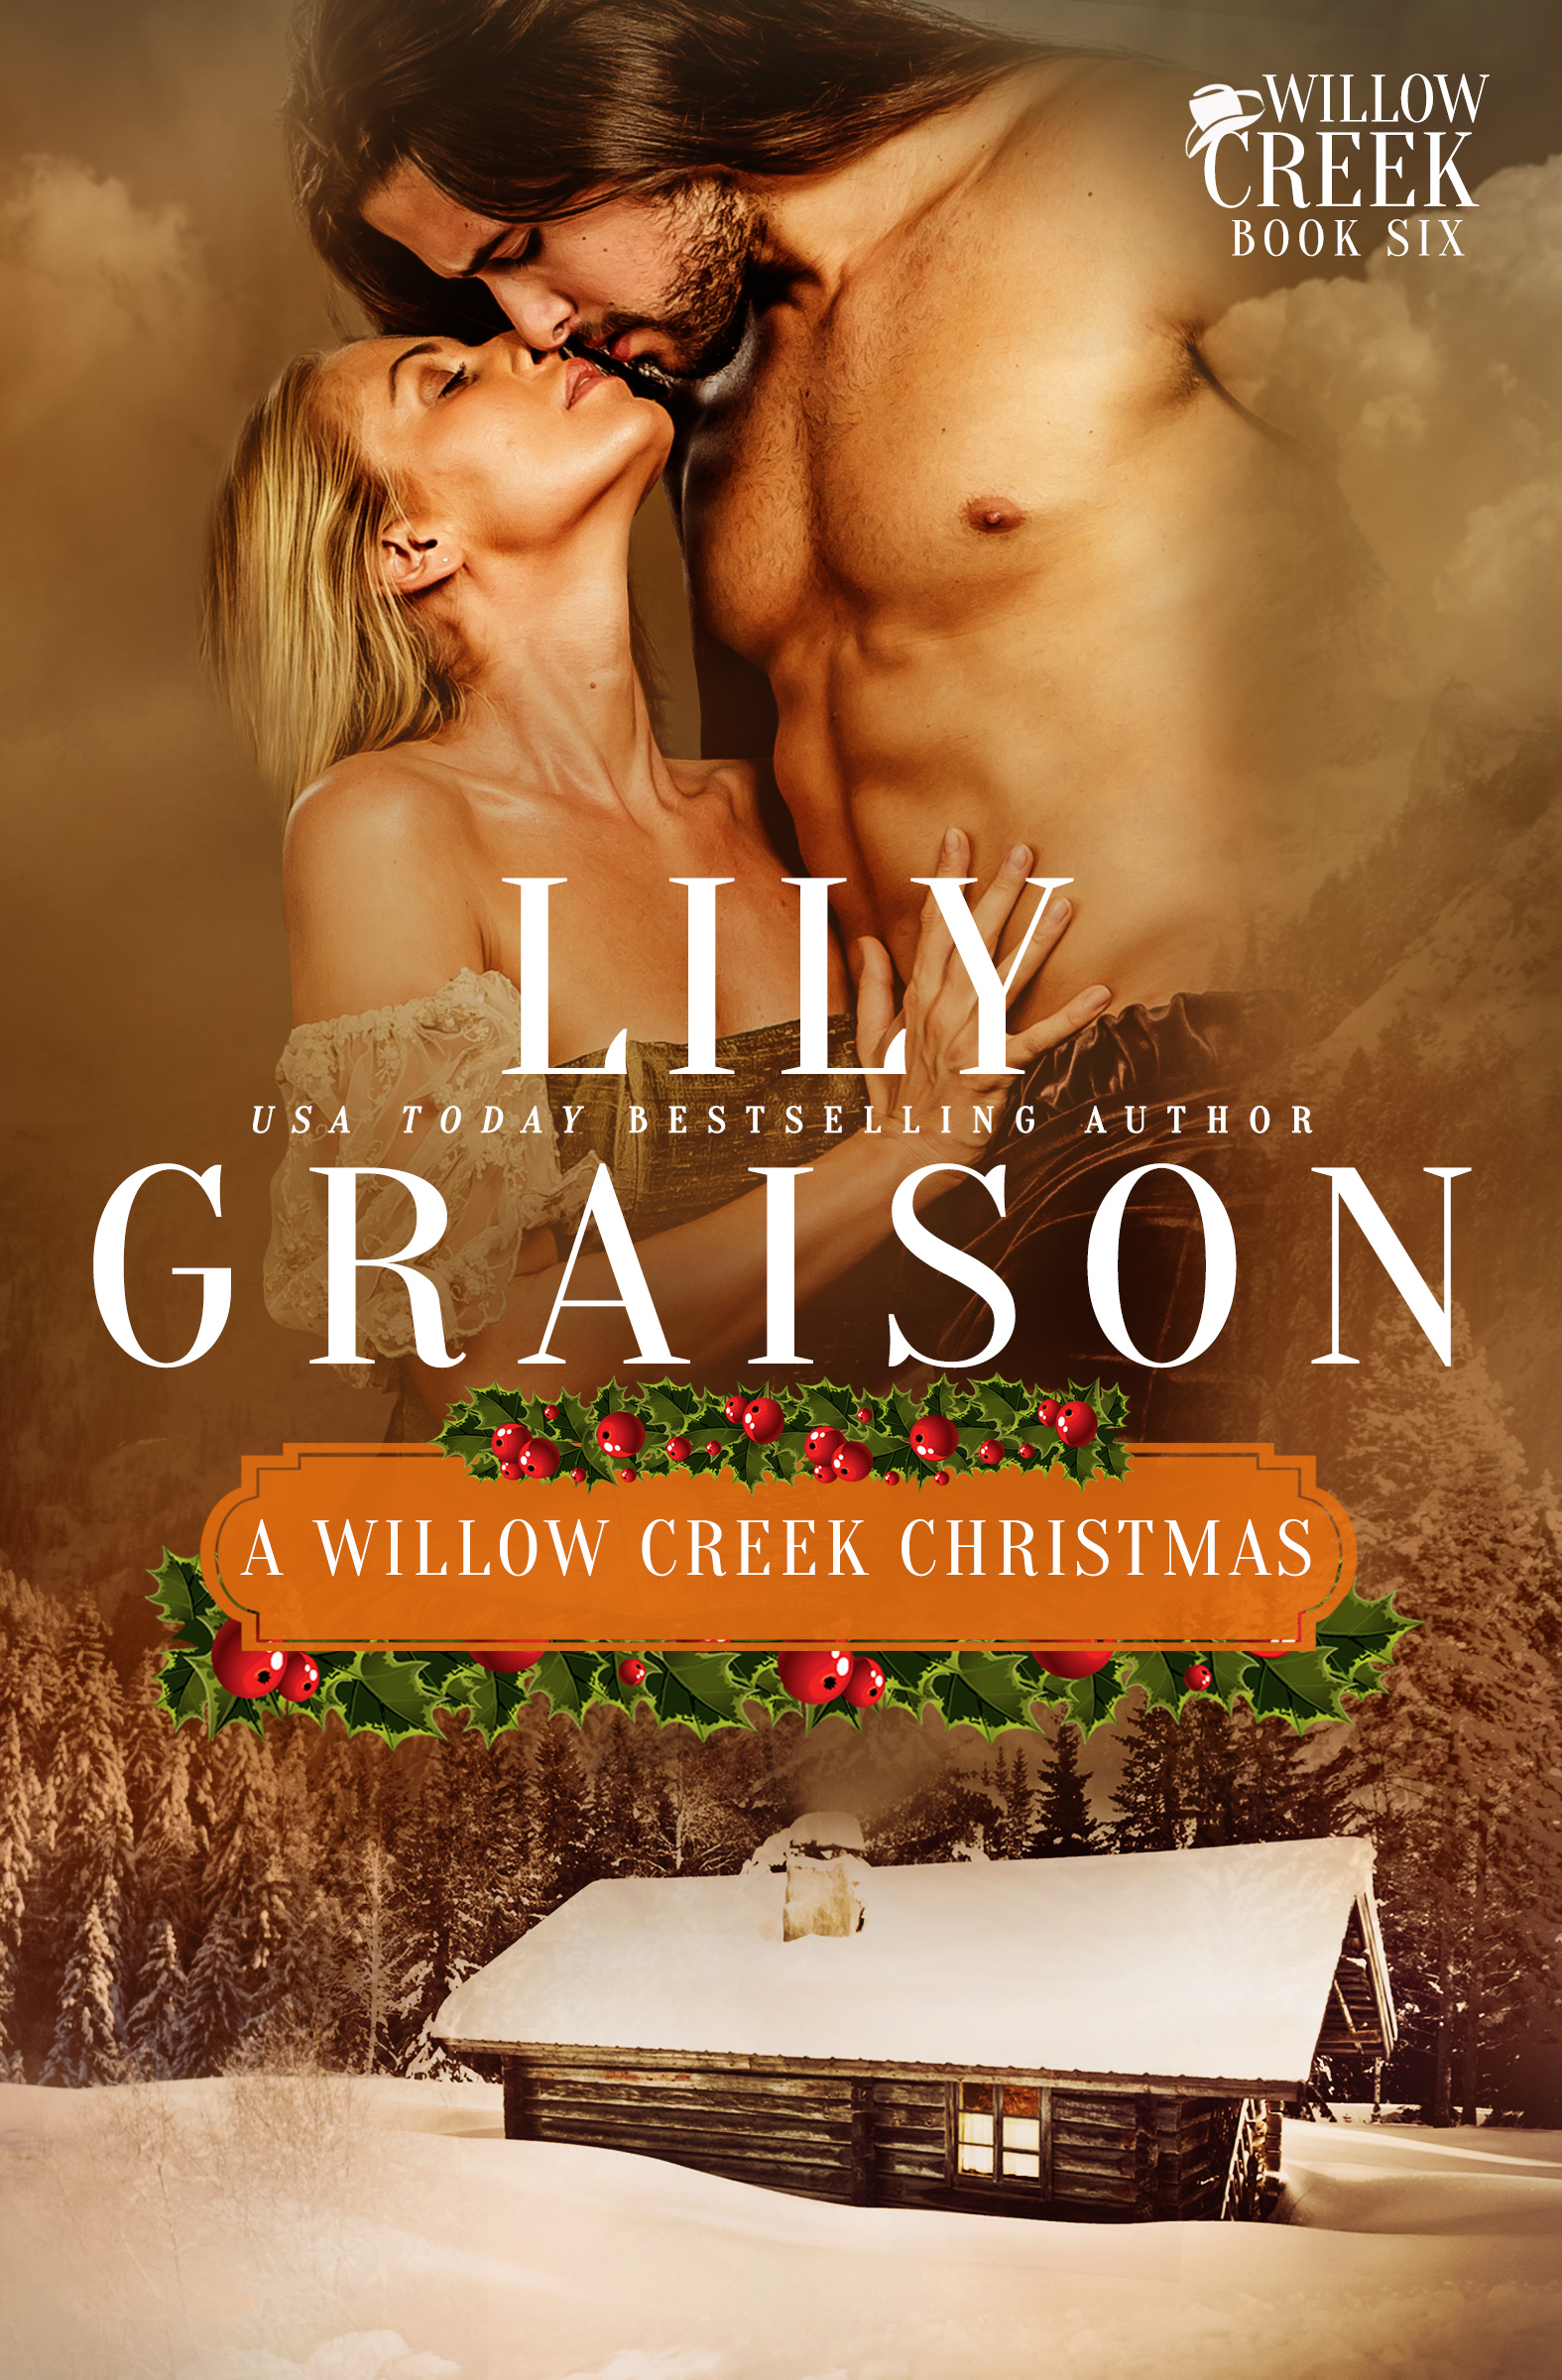 A Willow Creek Christmas by Lily Graison - Book 6 in the Willow Creek Series